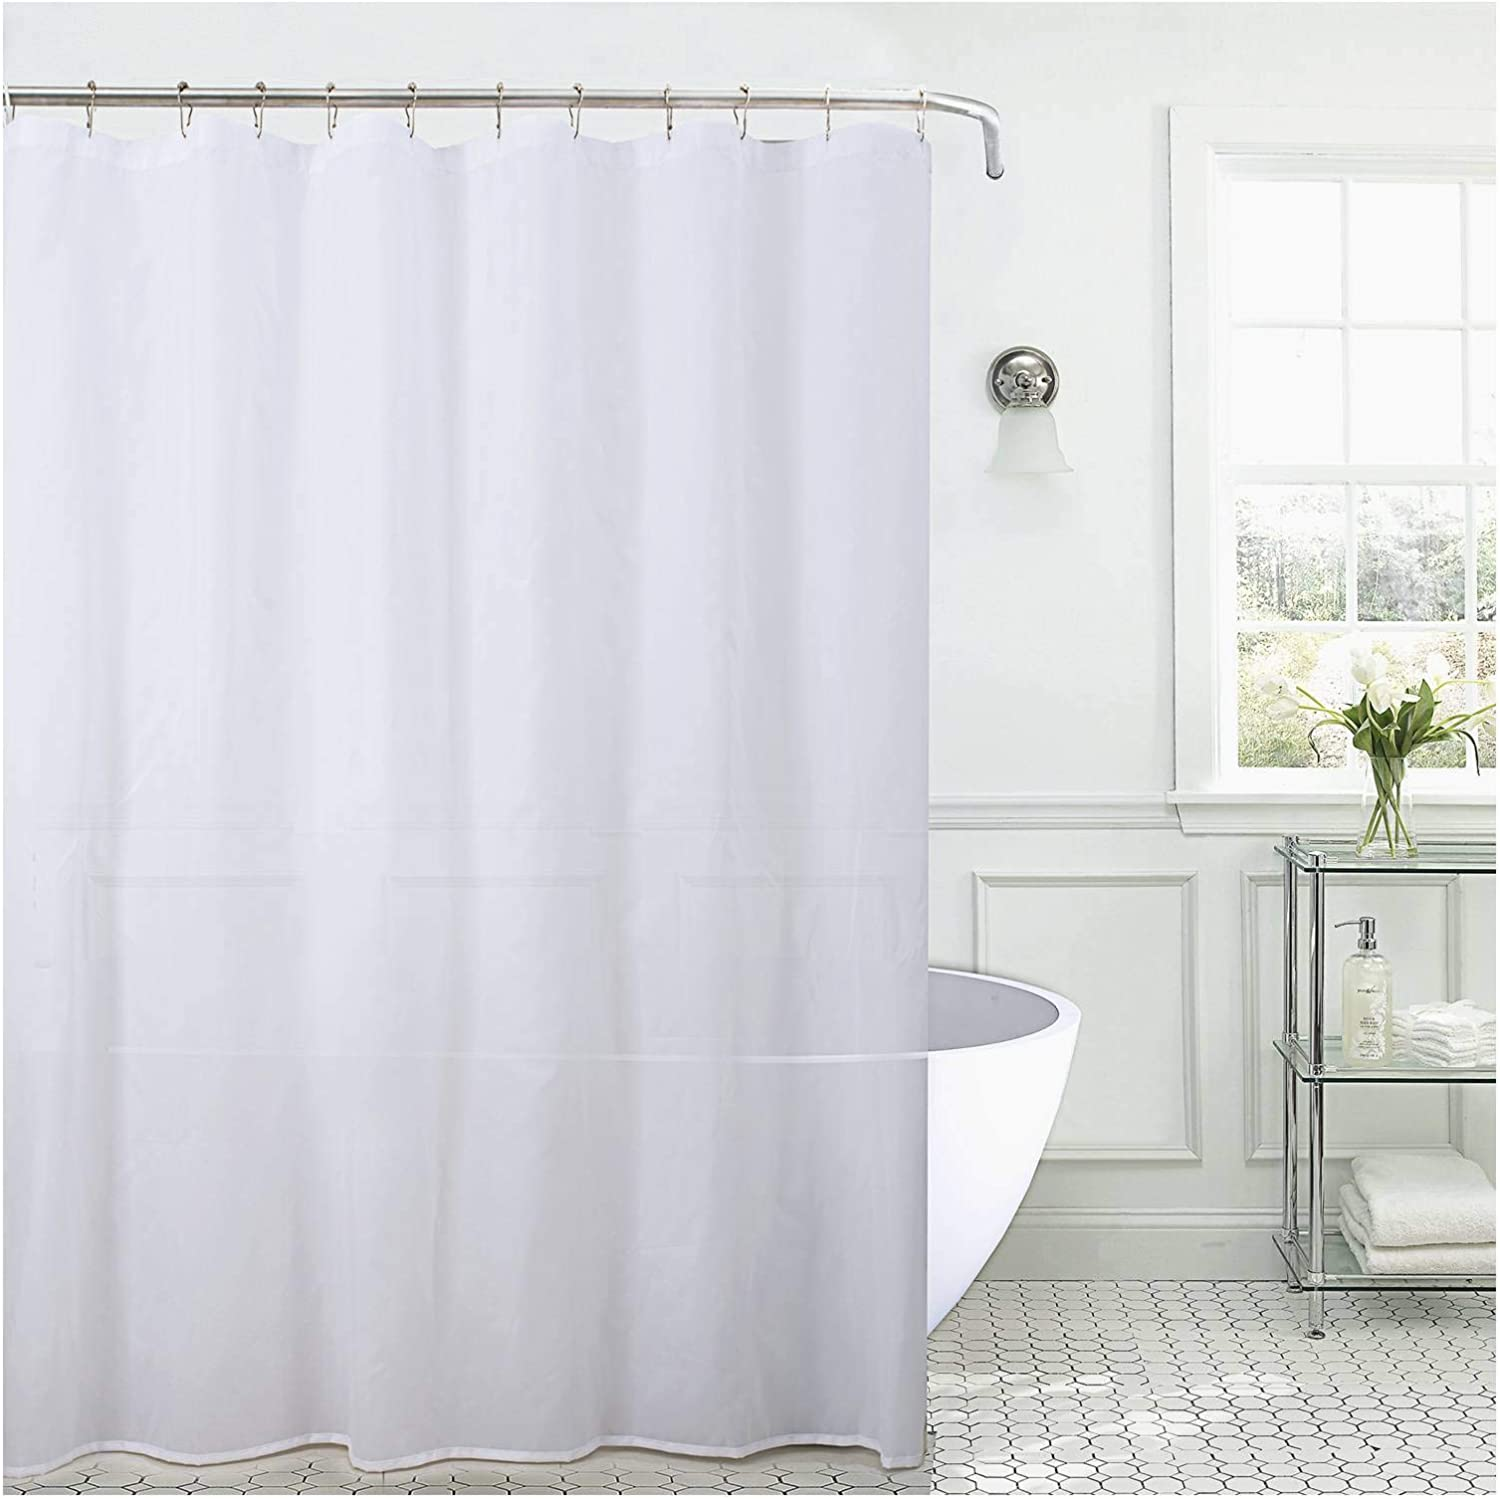 Jarl home Shower Curtain Liner - Waterproof White Shower Curtains for Bathroom - Nylon Fabric - 72×72 (White 2 pcs, 72×72)